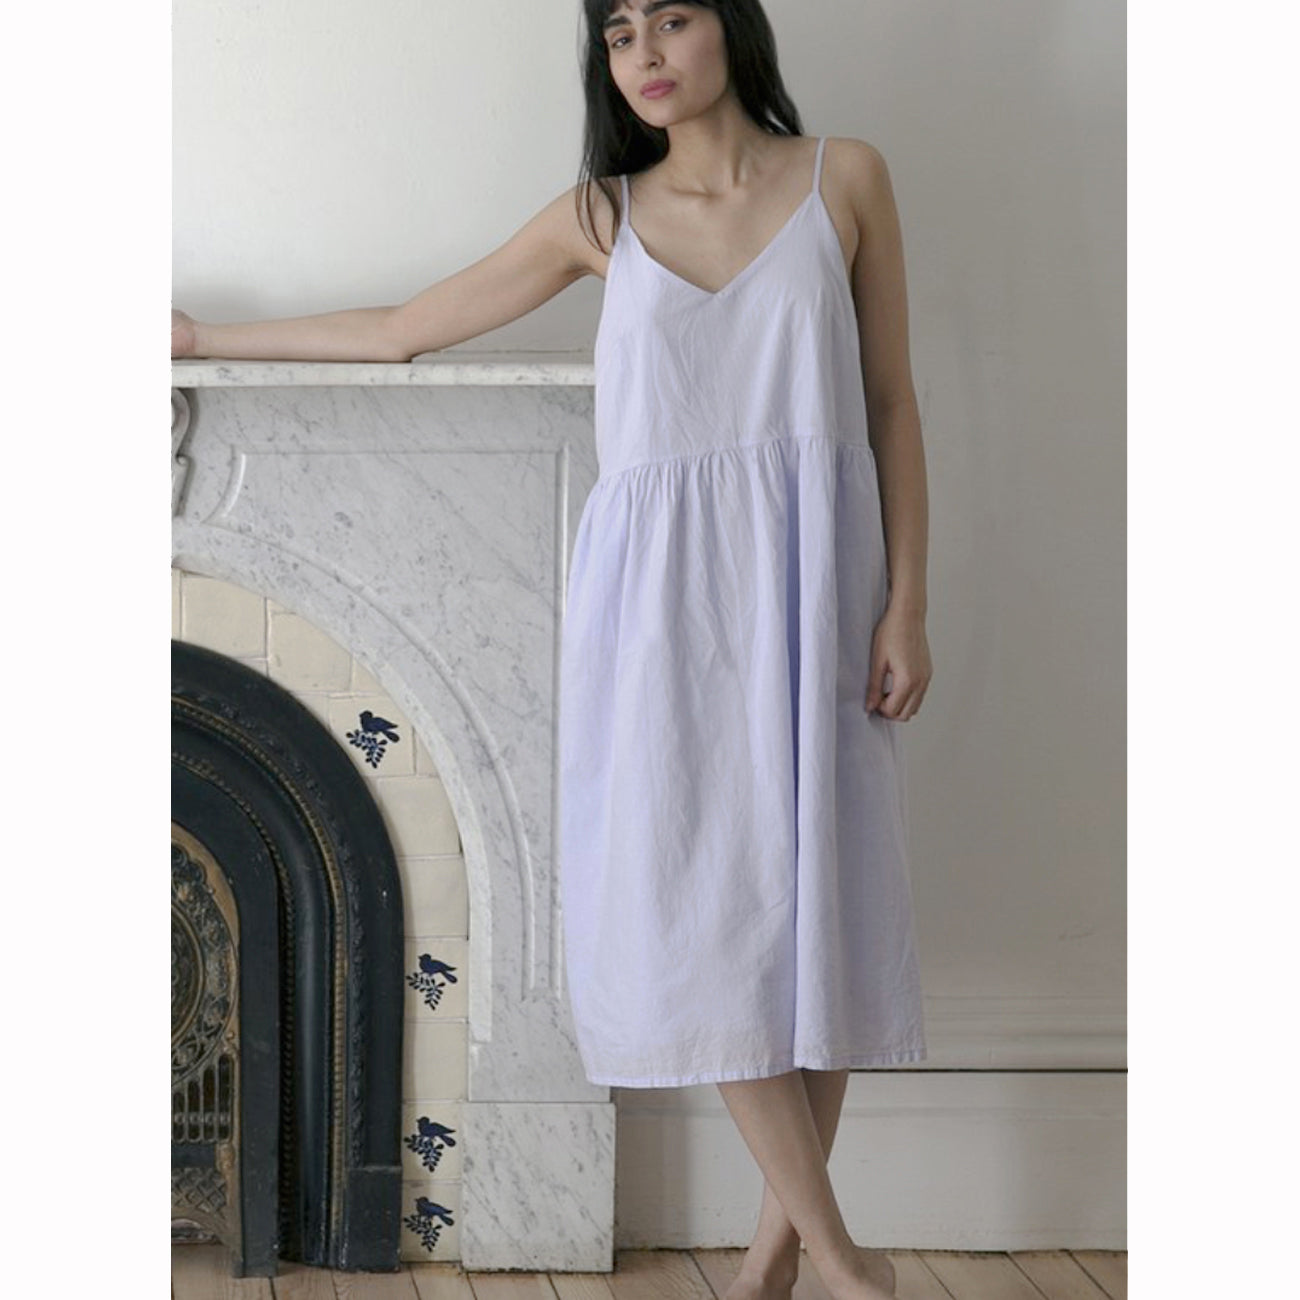 Ursa Minor Delphine Dress in Lilac